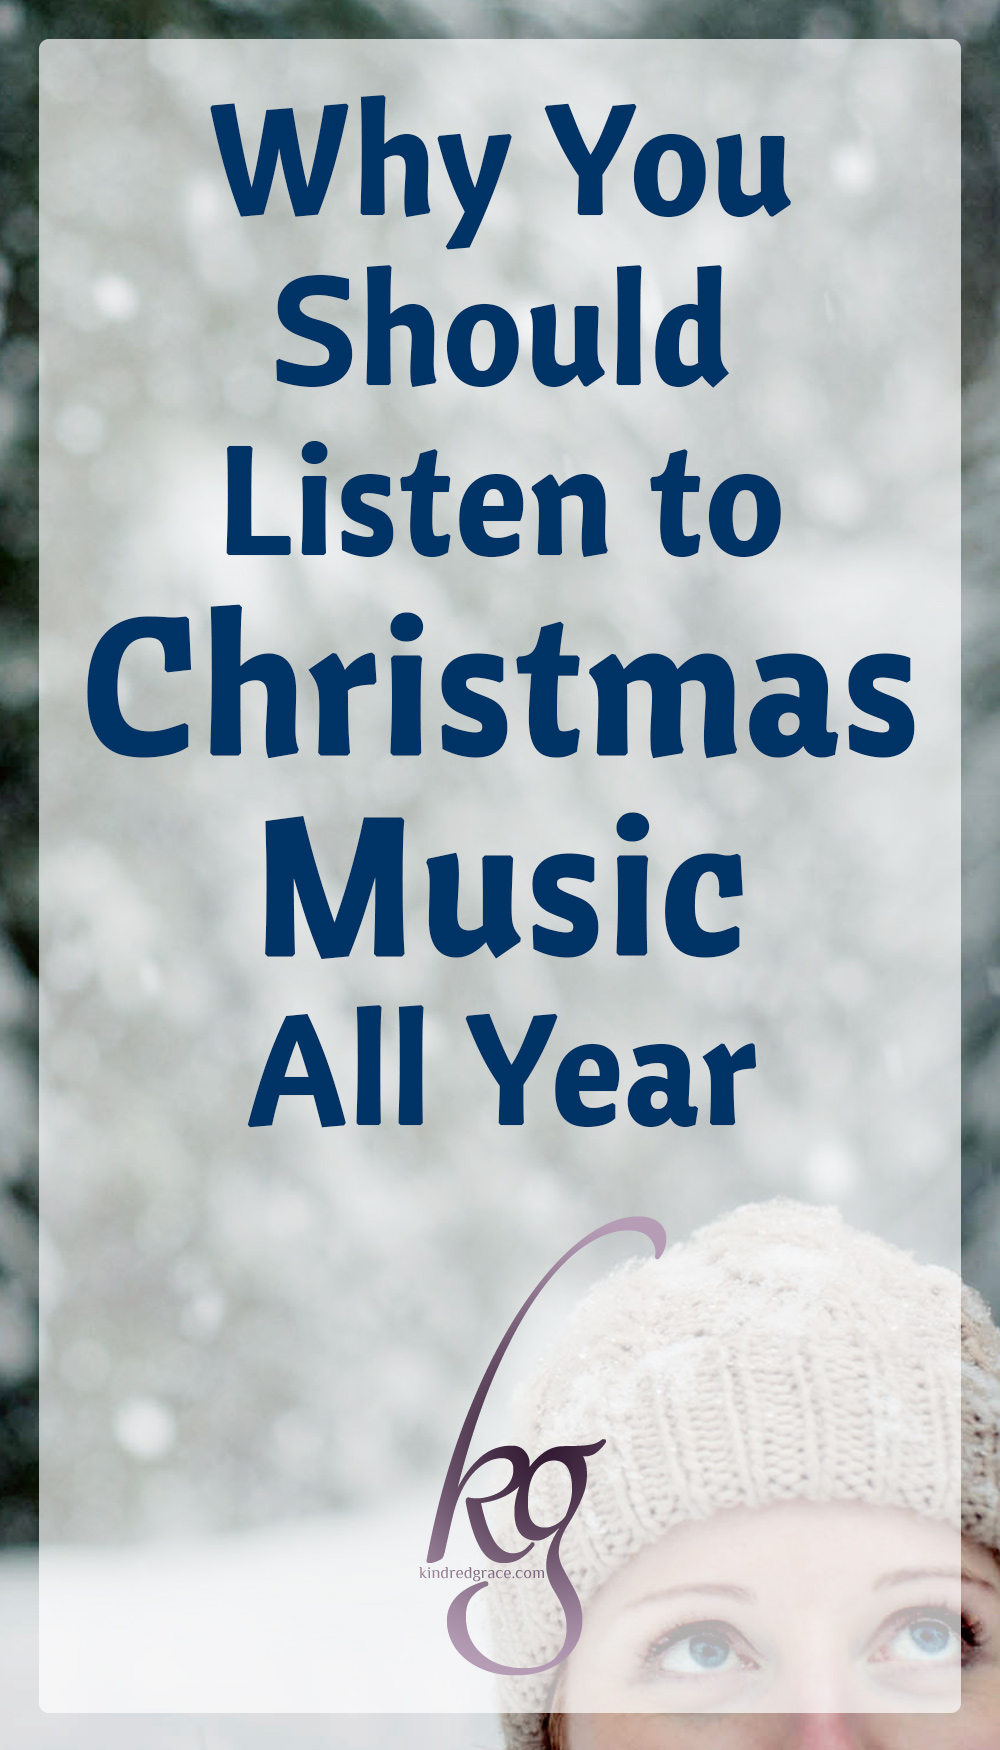 "If Facebook can be trusted, there are two types of people in the world: those who listen to Christmas music year-round and those who only listen to it in December. I fall in the former category as the majority of the Christmas music I like is just music that celebrates Christ and His coming...and that's something to be celebrated year-round! And as much as I love the old Christmas carols (especially those that have lots of obscure verses!), I also enjoy songs I've never heard before, that take the ""old"" thoughts expressed in the traditional Christmas carols and make them new. via @KindredGrace"